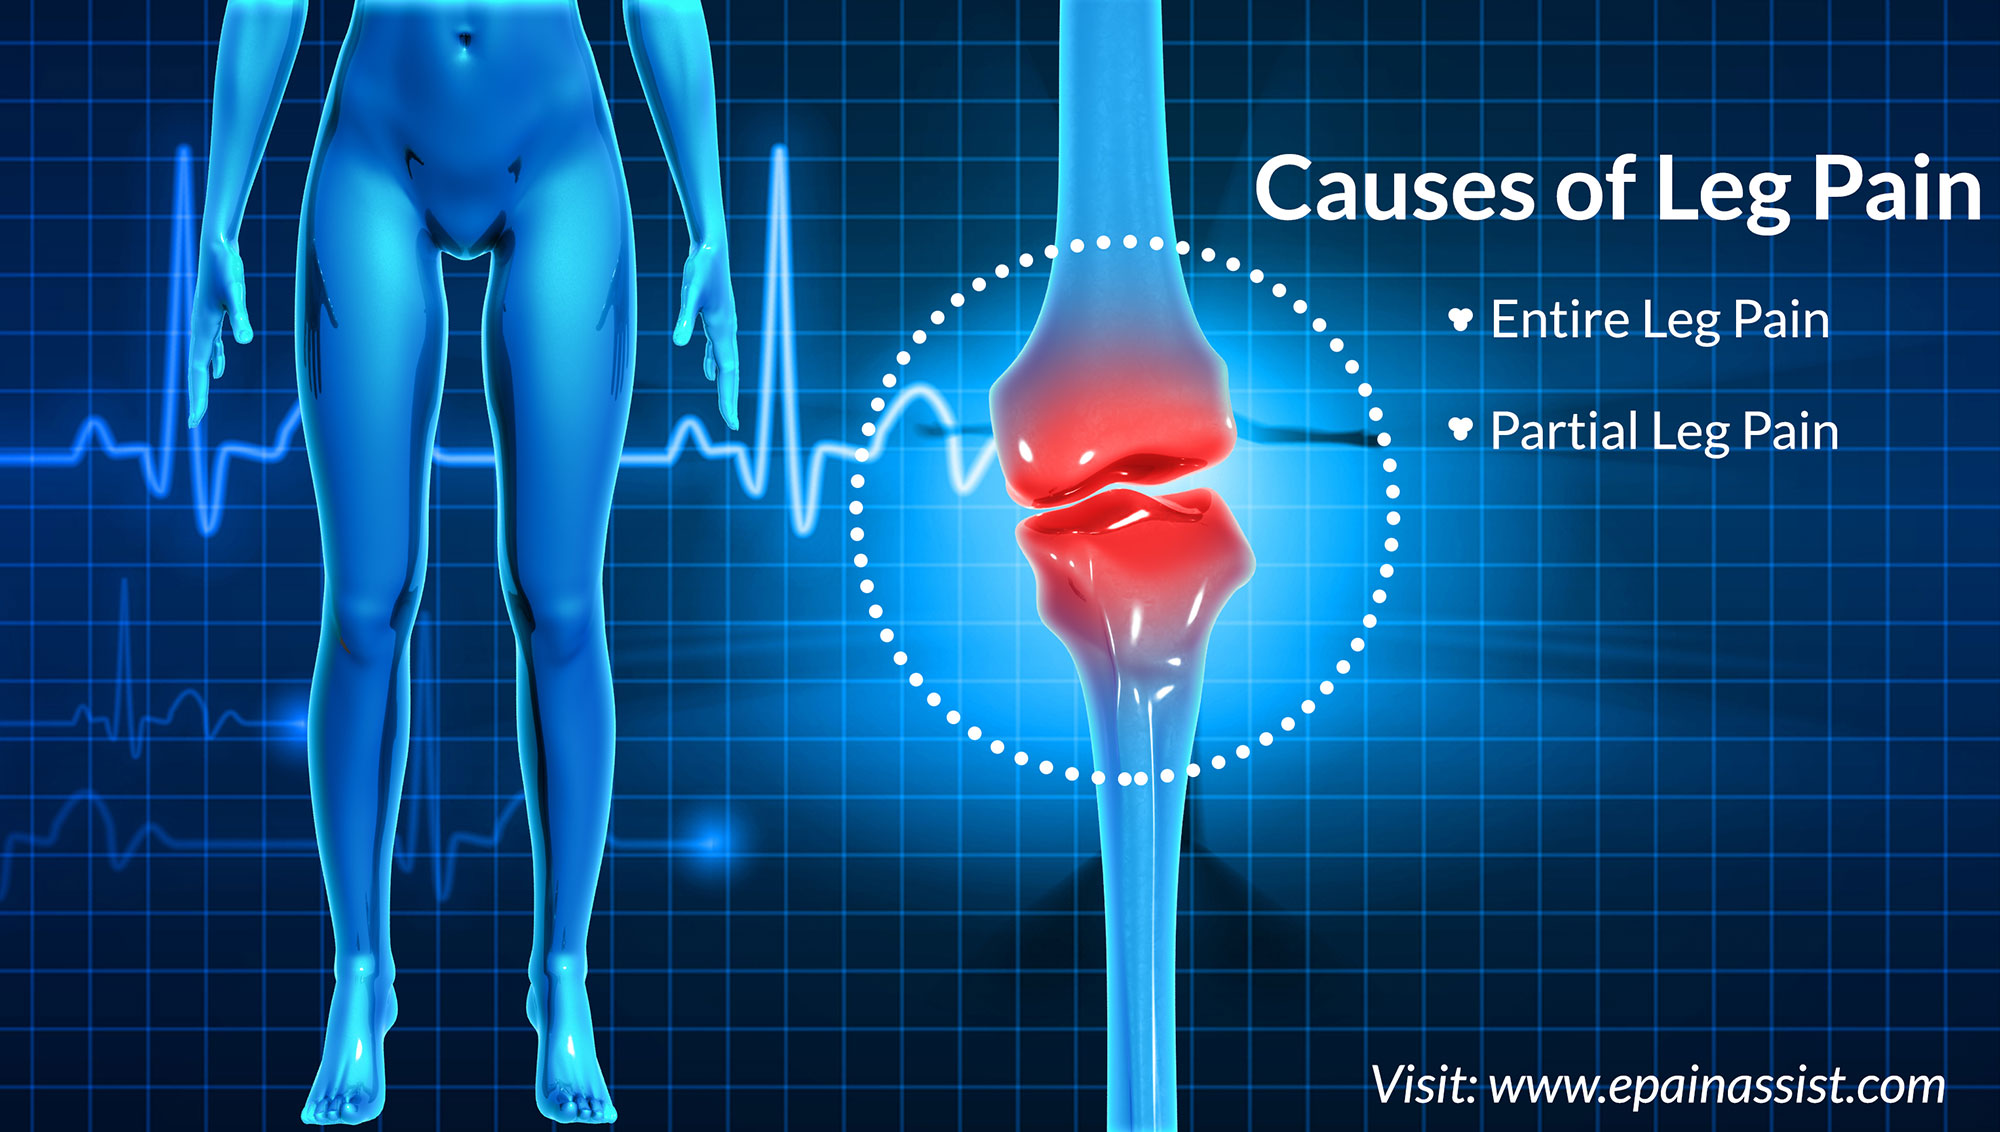 Causes of Leg Pain